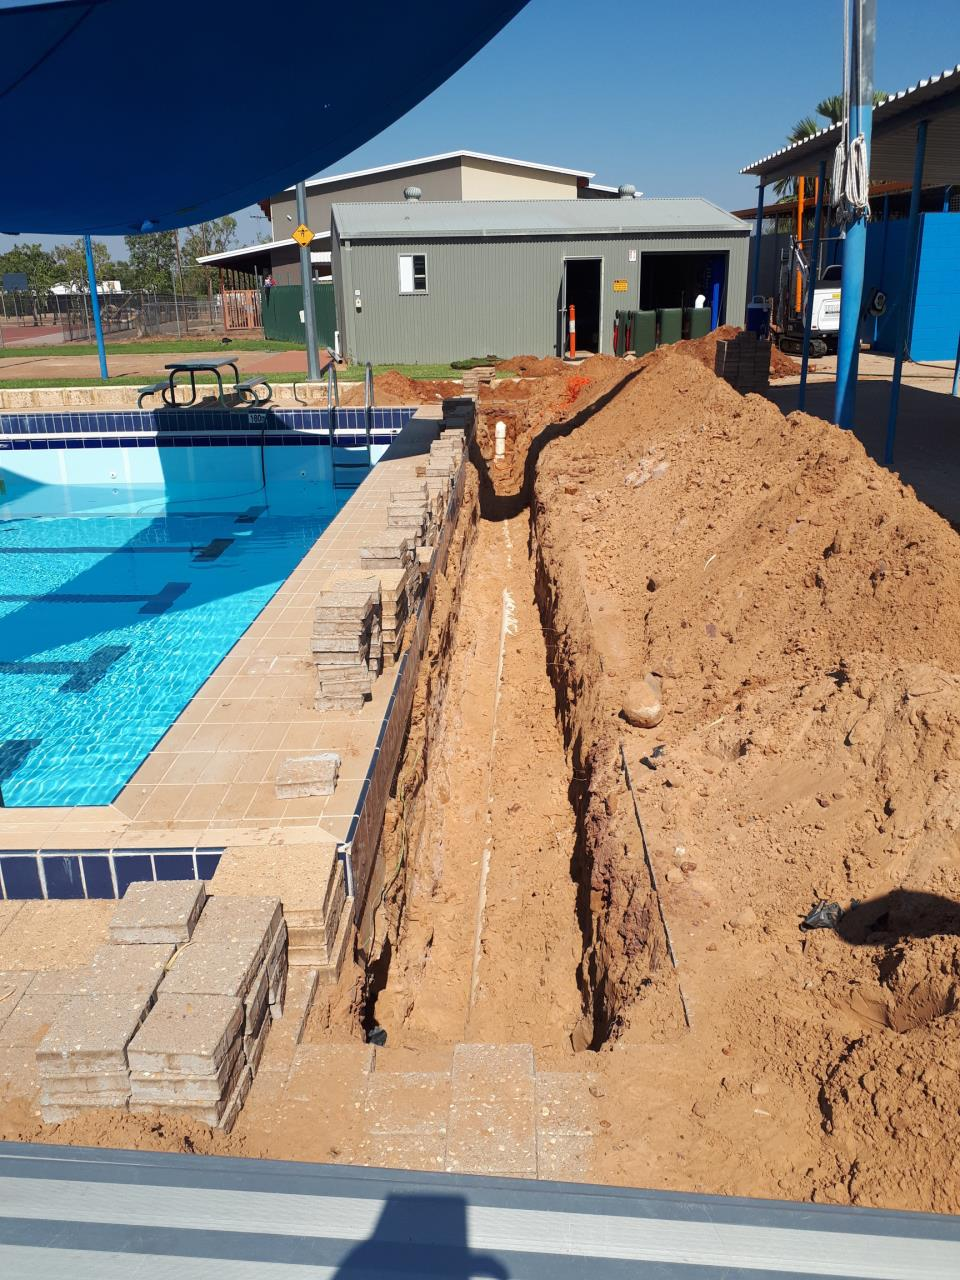 Wyndham Swimming Pool Closure Update